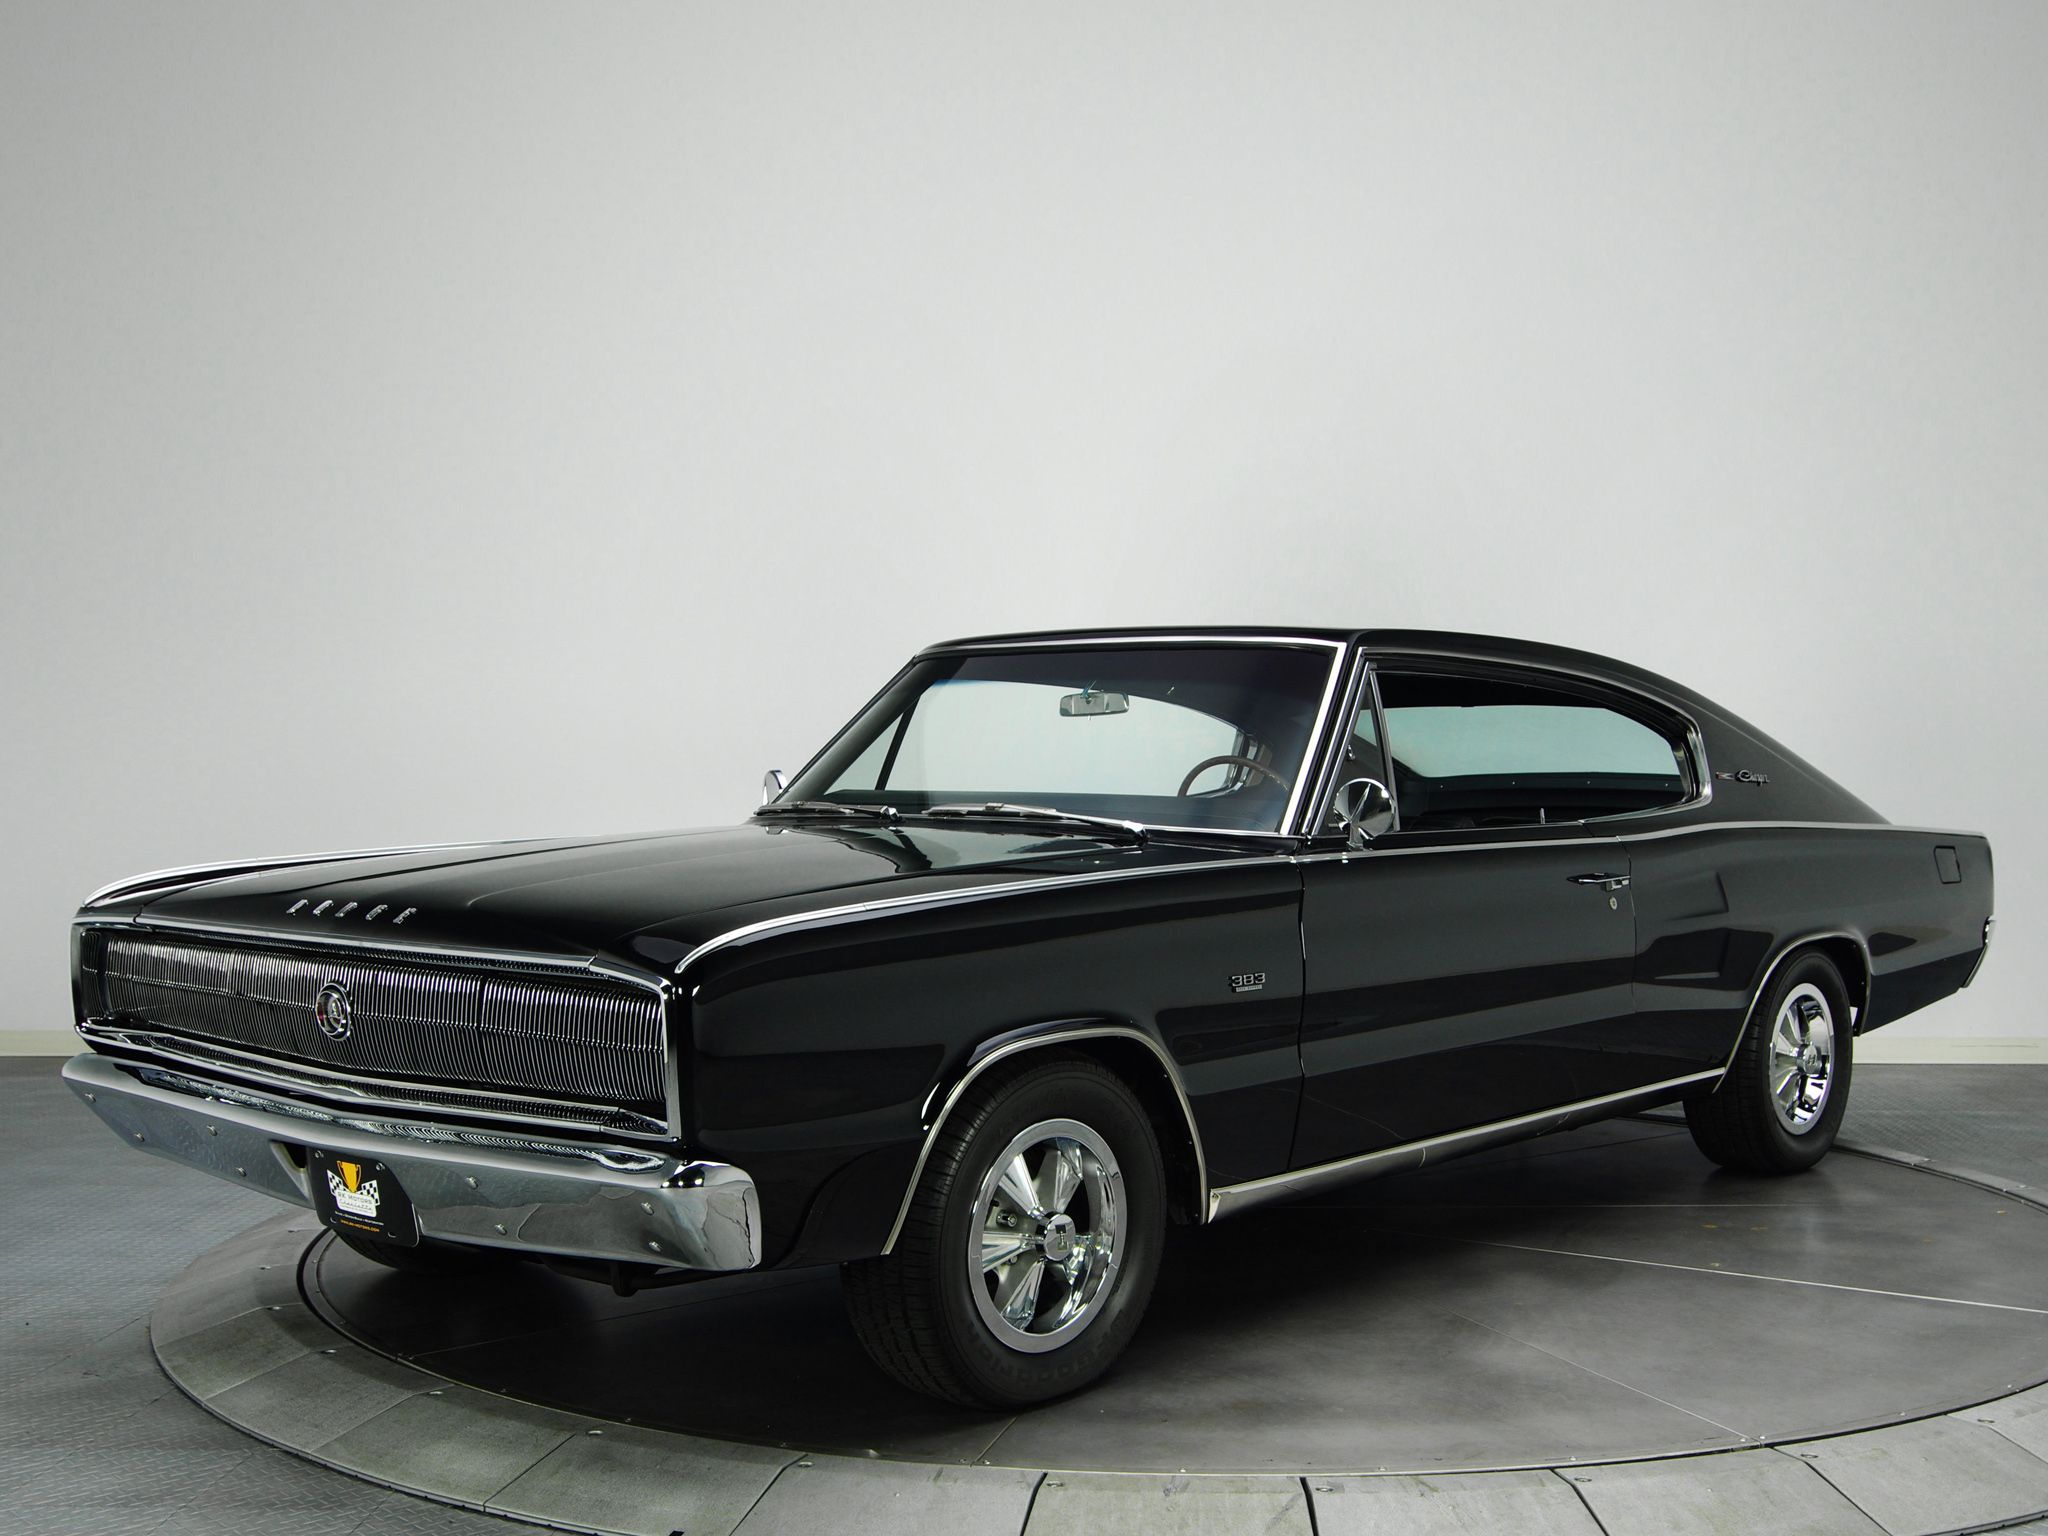 1966 dodge charger hd dodge charger 383 1966 wallpaper